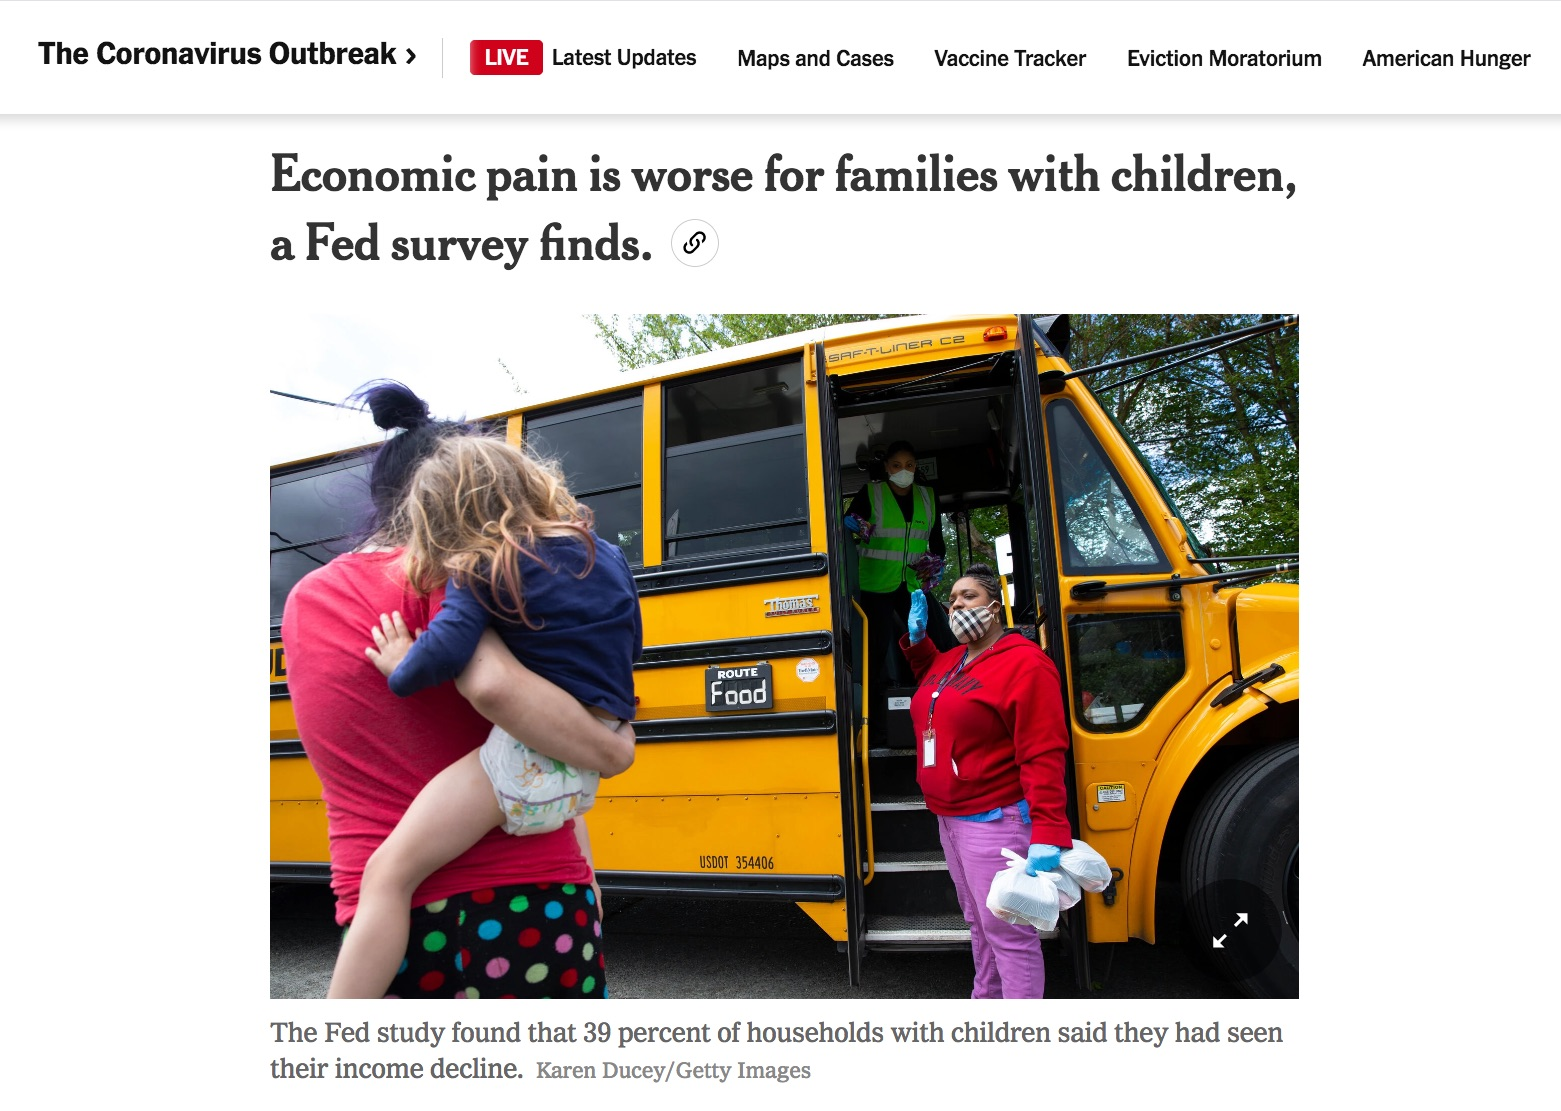 Economic pain is worse for families with children, a Fed survey finds, for Getty Images, Published in the New York Times, August 13, 2020.